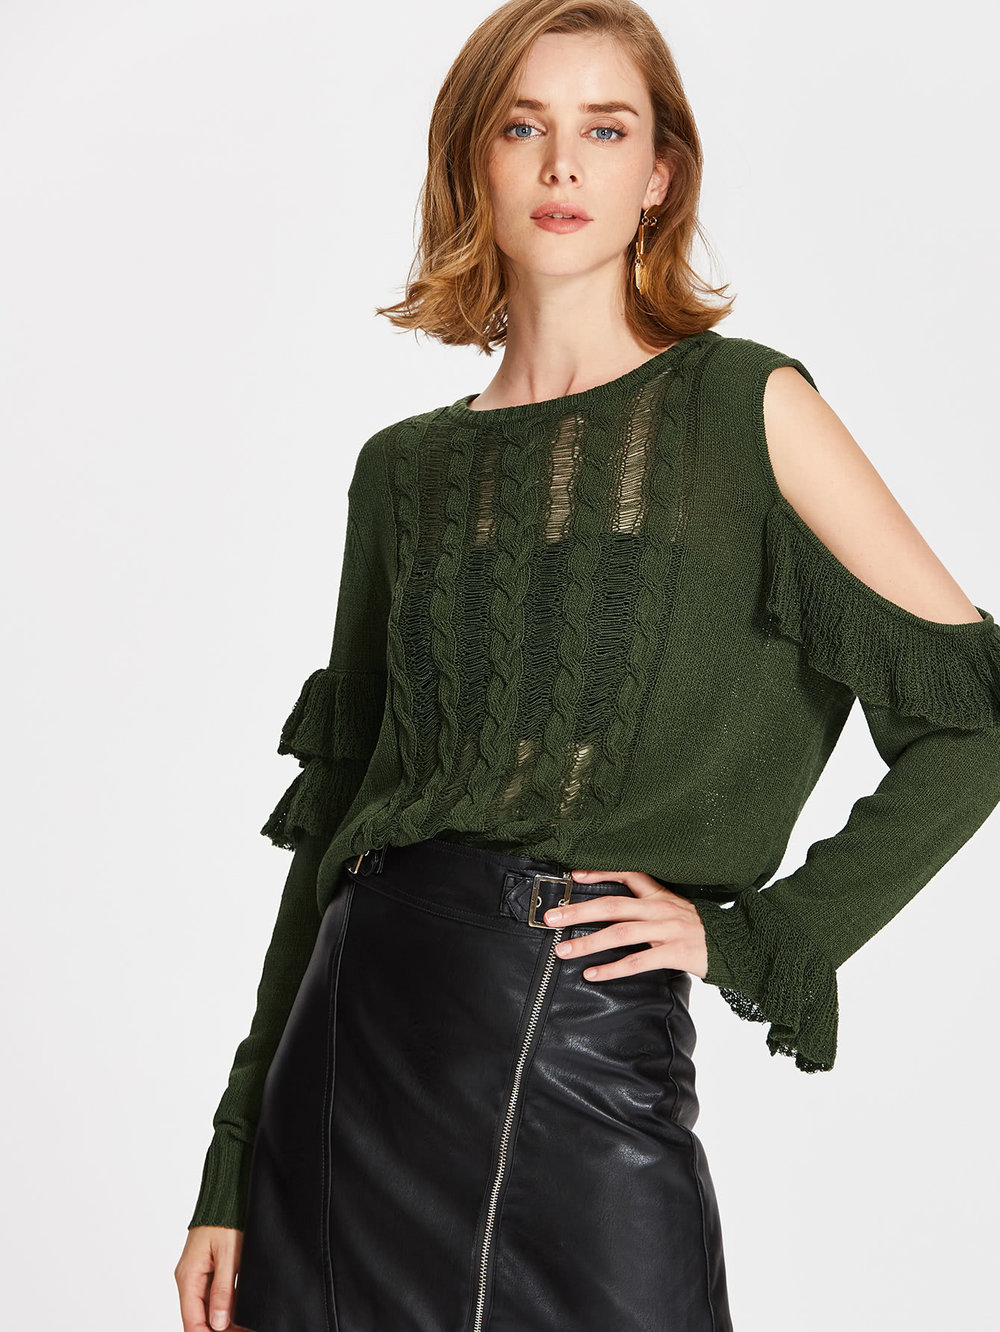 cyber monday sales shein green ruffle cold shoulder sweater.jpg